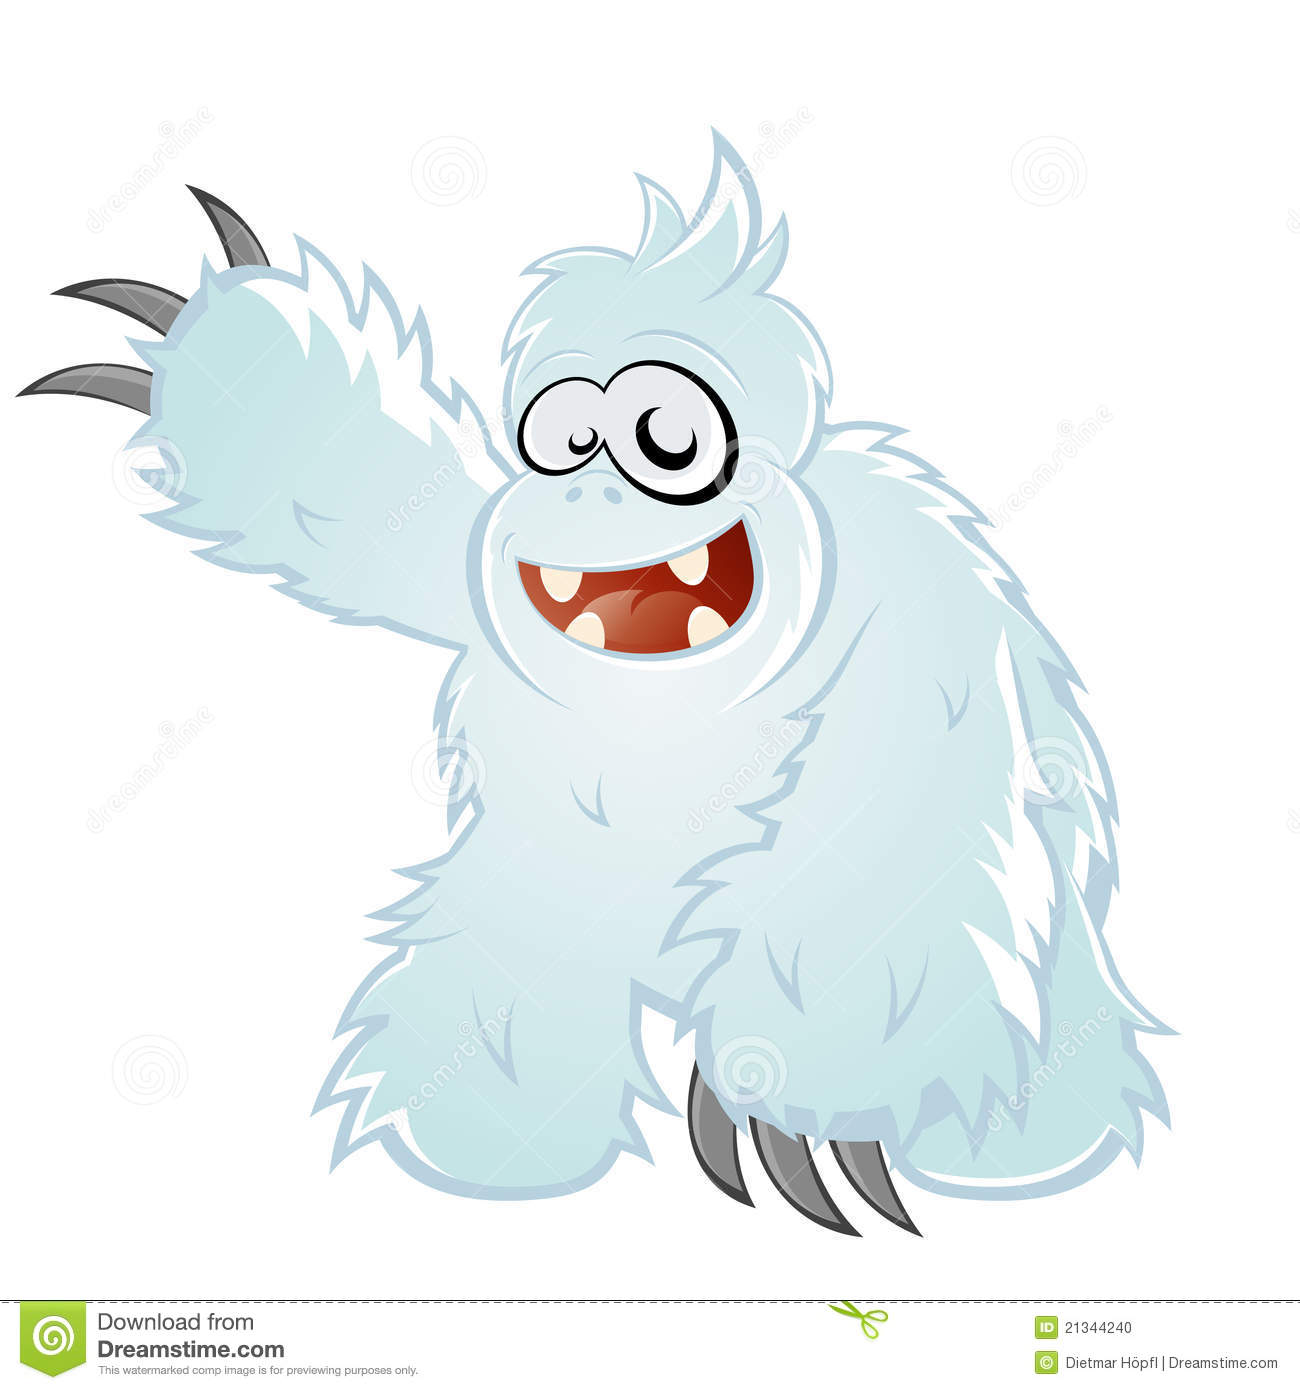 Clipart of a Cartoon Yeti Abominable Snowman Wearing ...